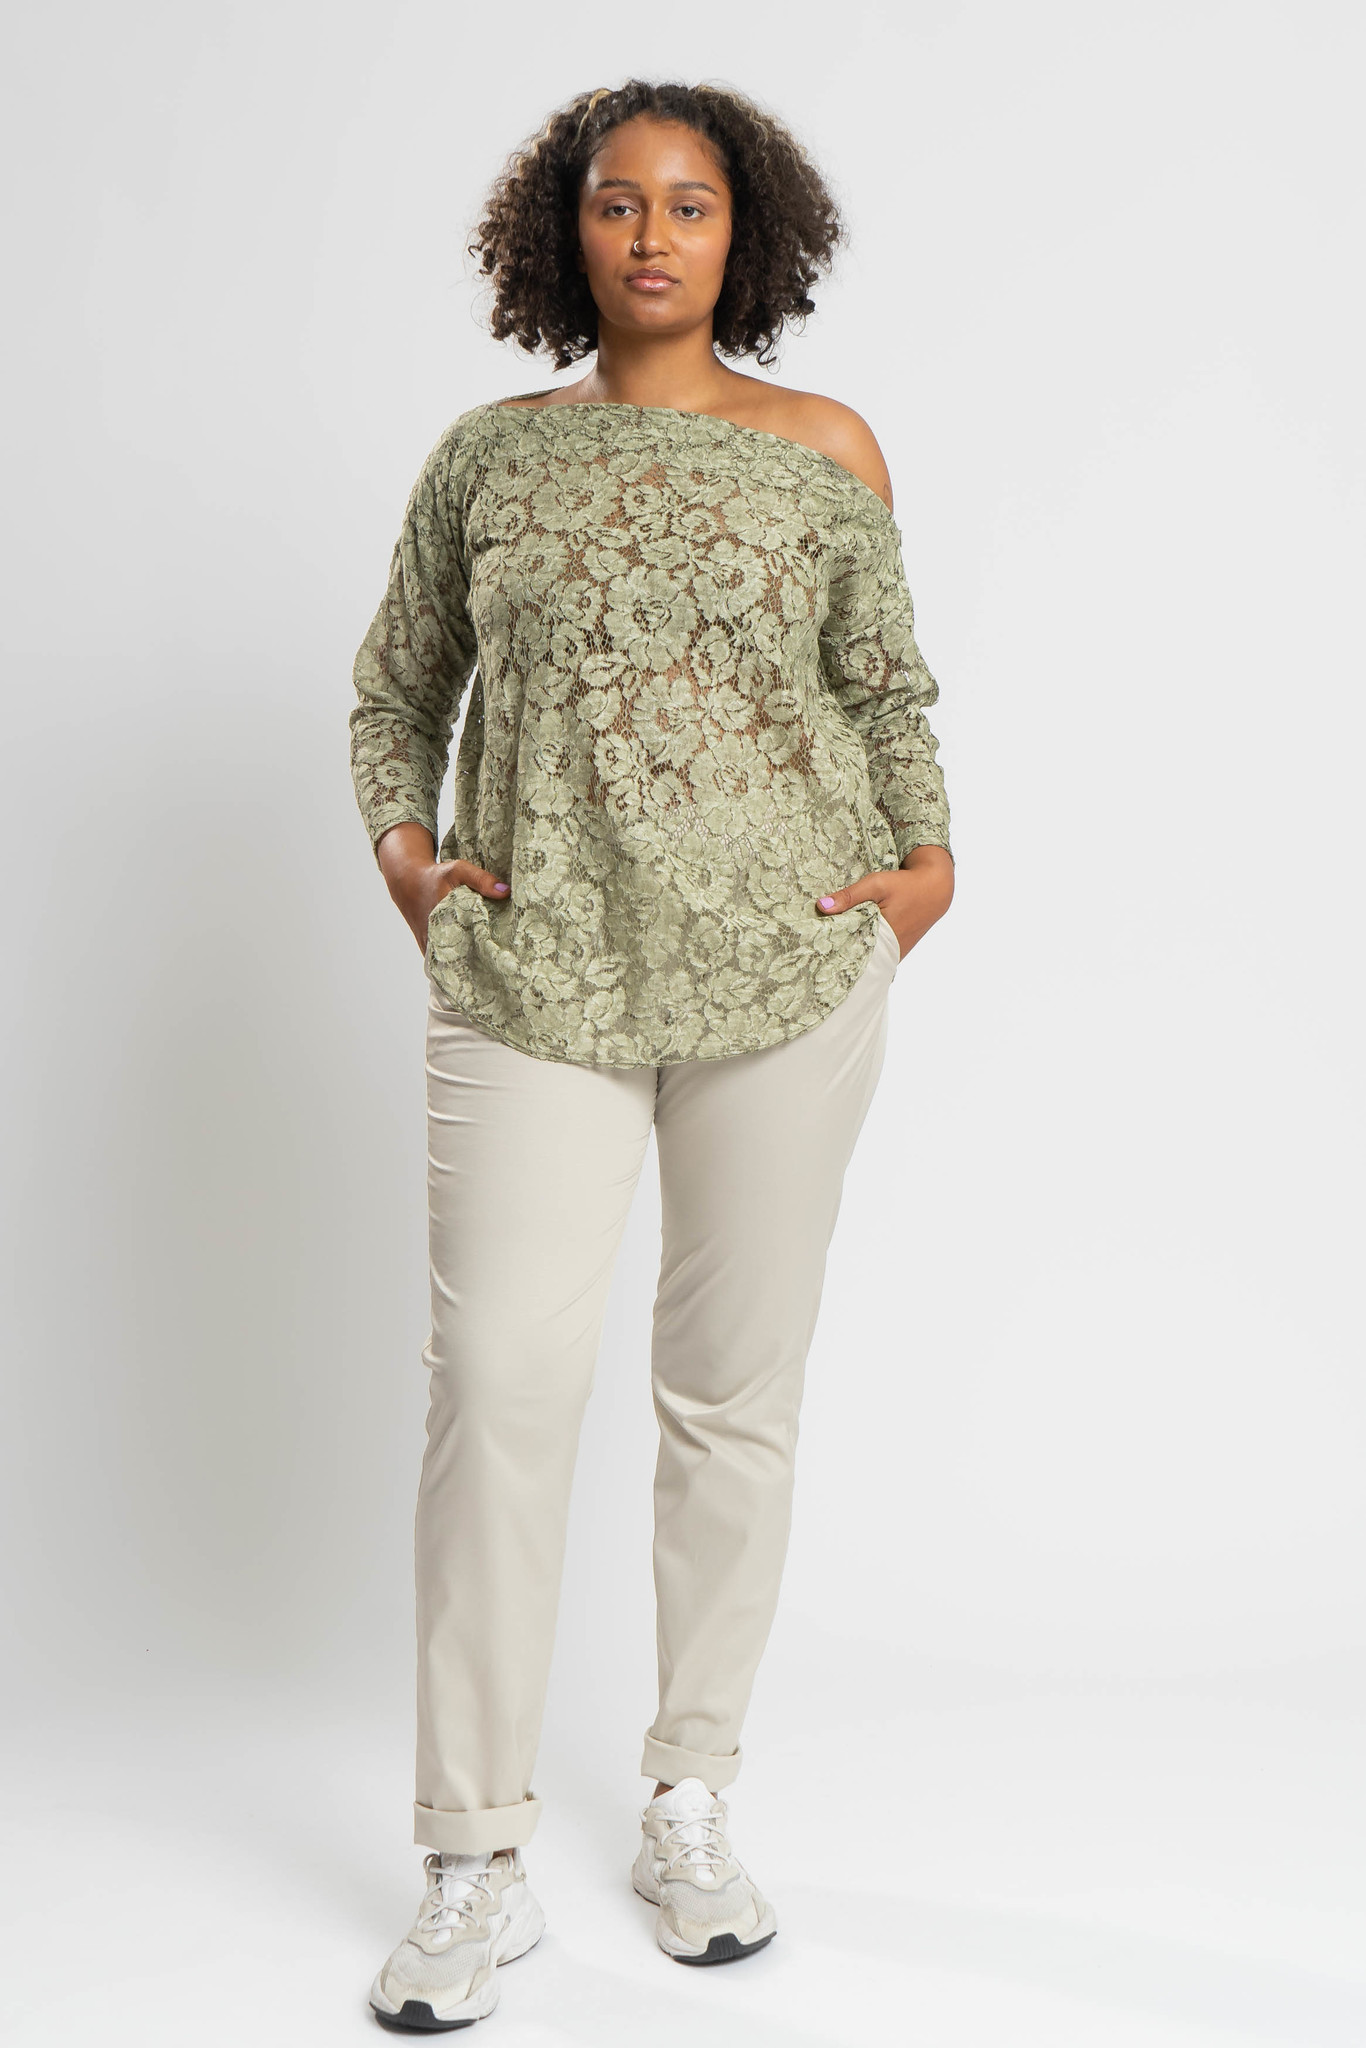 TAINA Top aus Polyester-Spitze-4